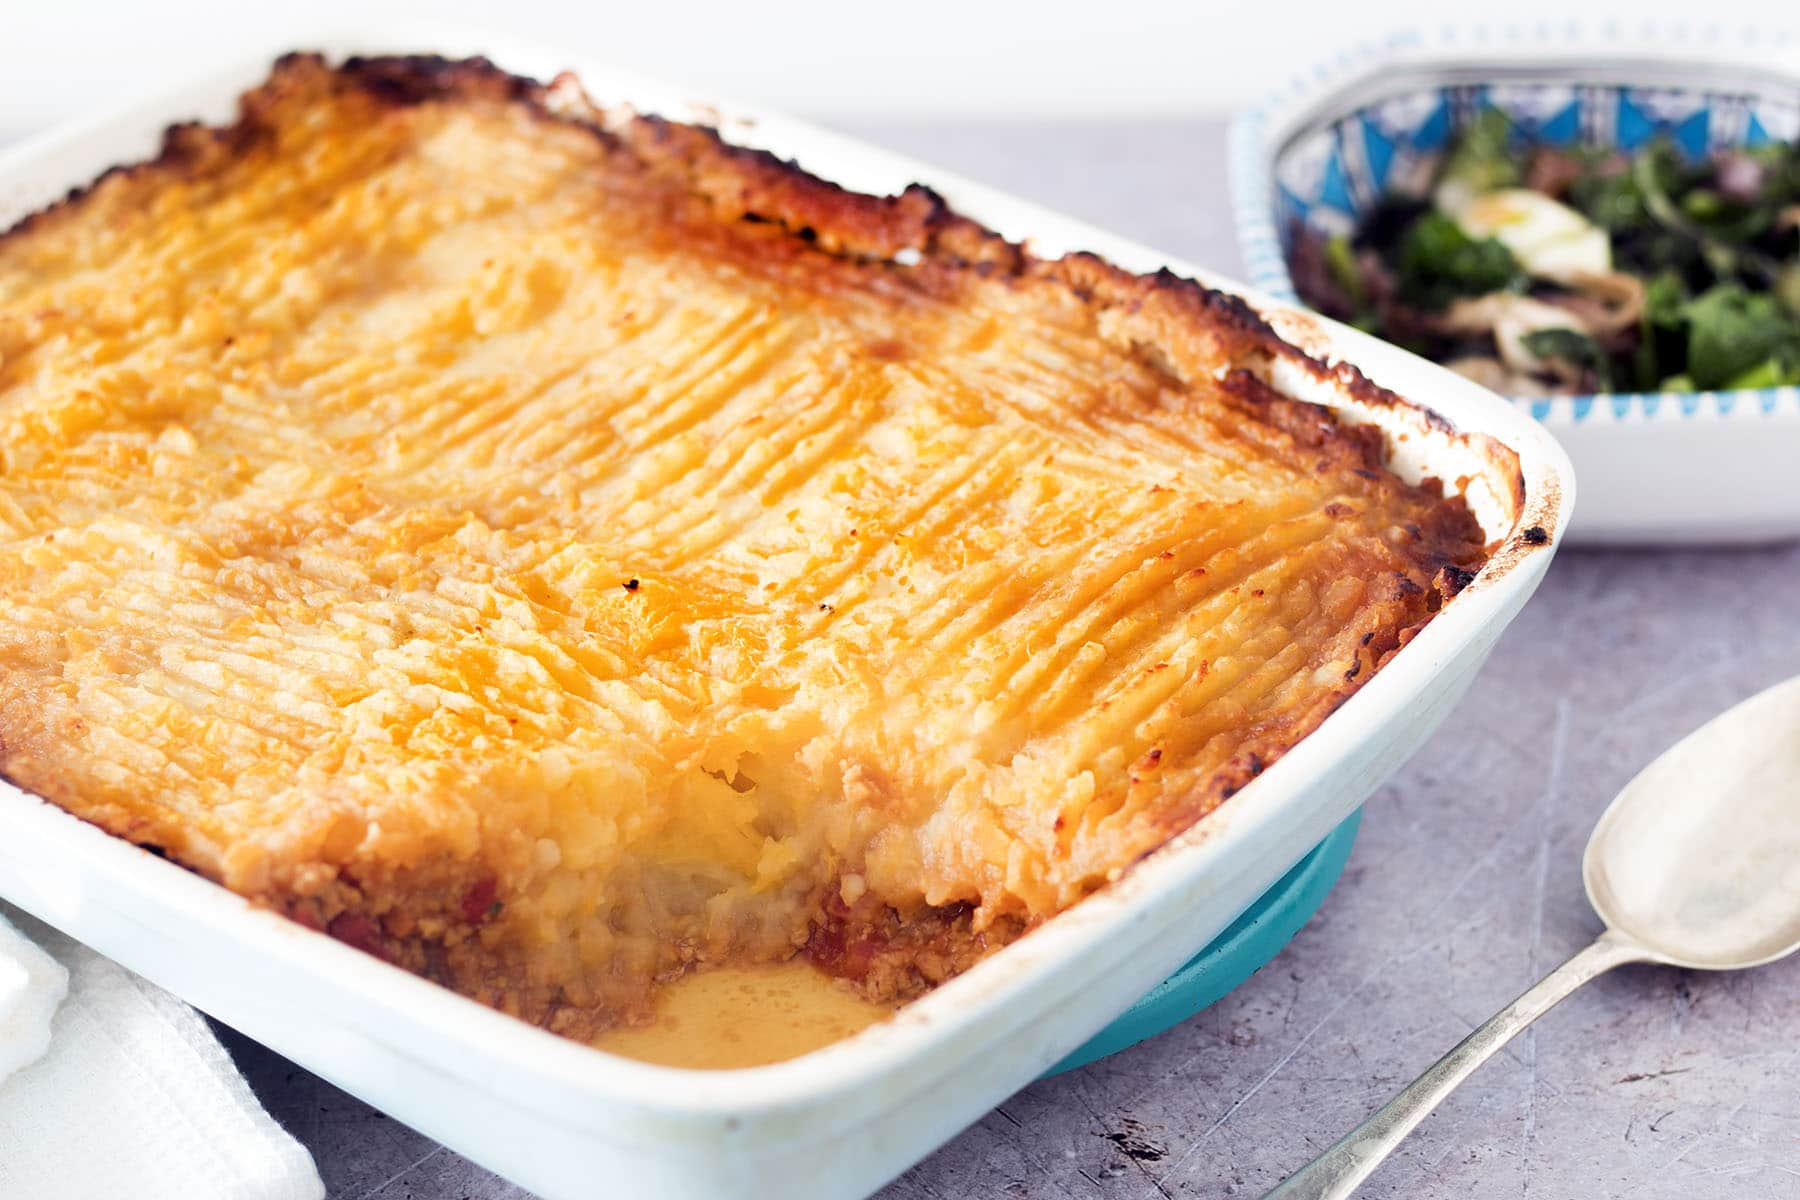 vegan shepherds pie in blue and white oven dish with greens in background